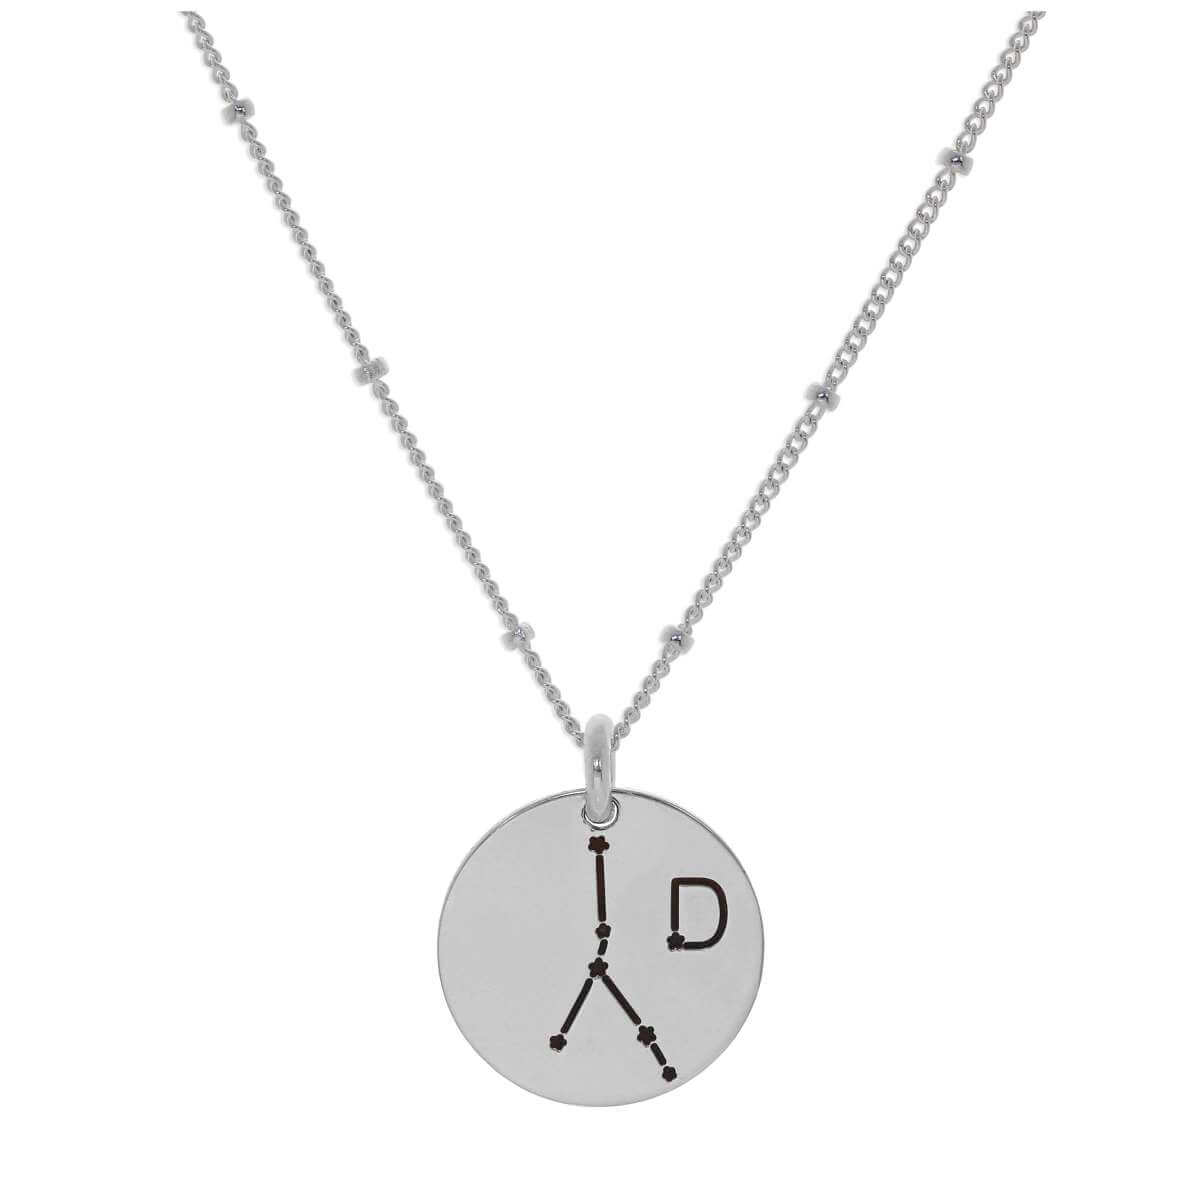 Bespoke Sterling Silver Cancer Constellation & Initial Necklace 12-24 Inch